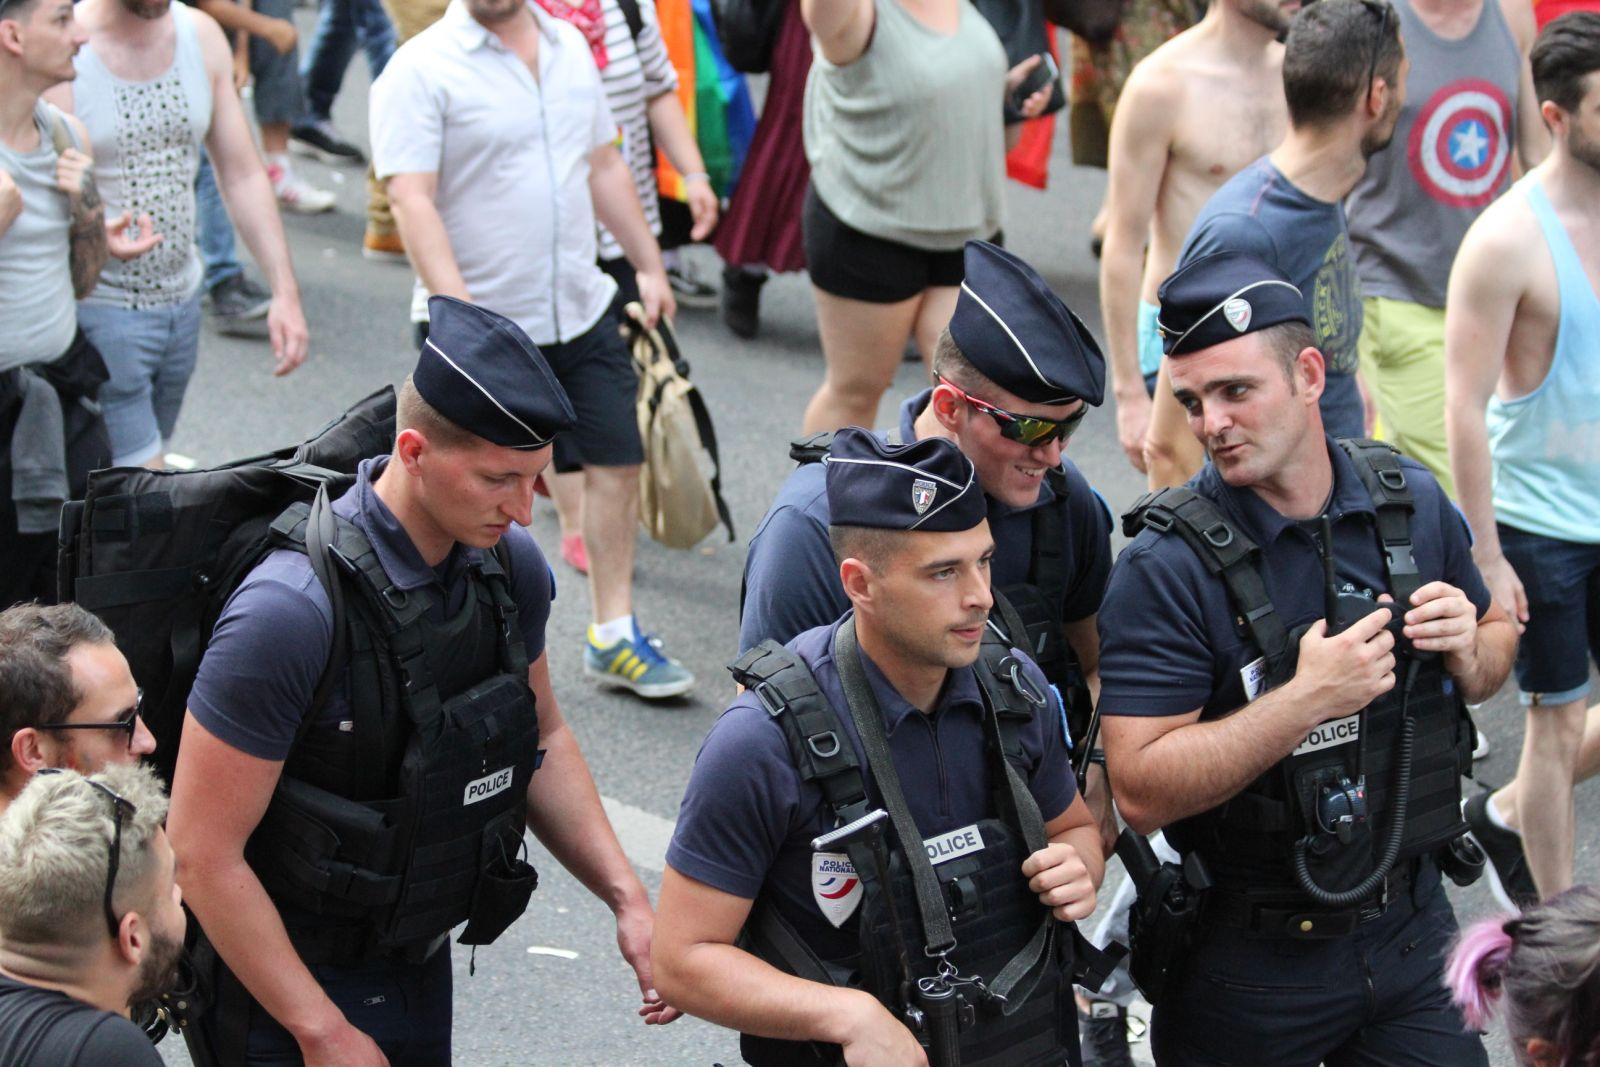 Program of Paris Gay Pride